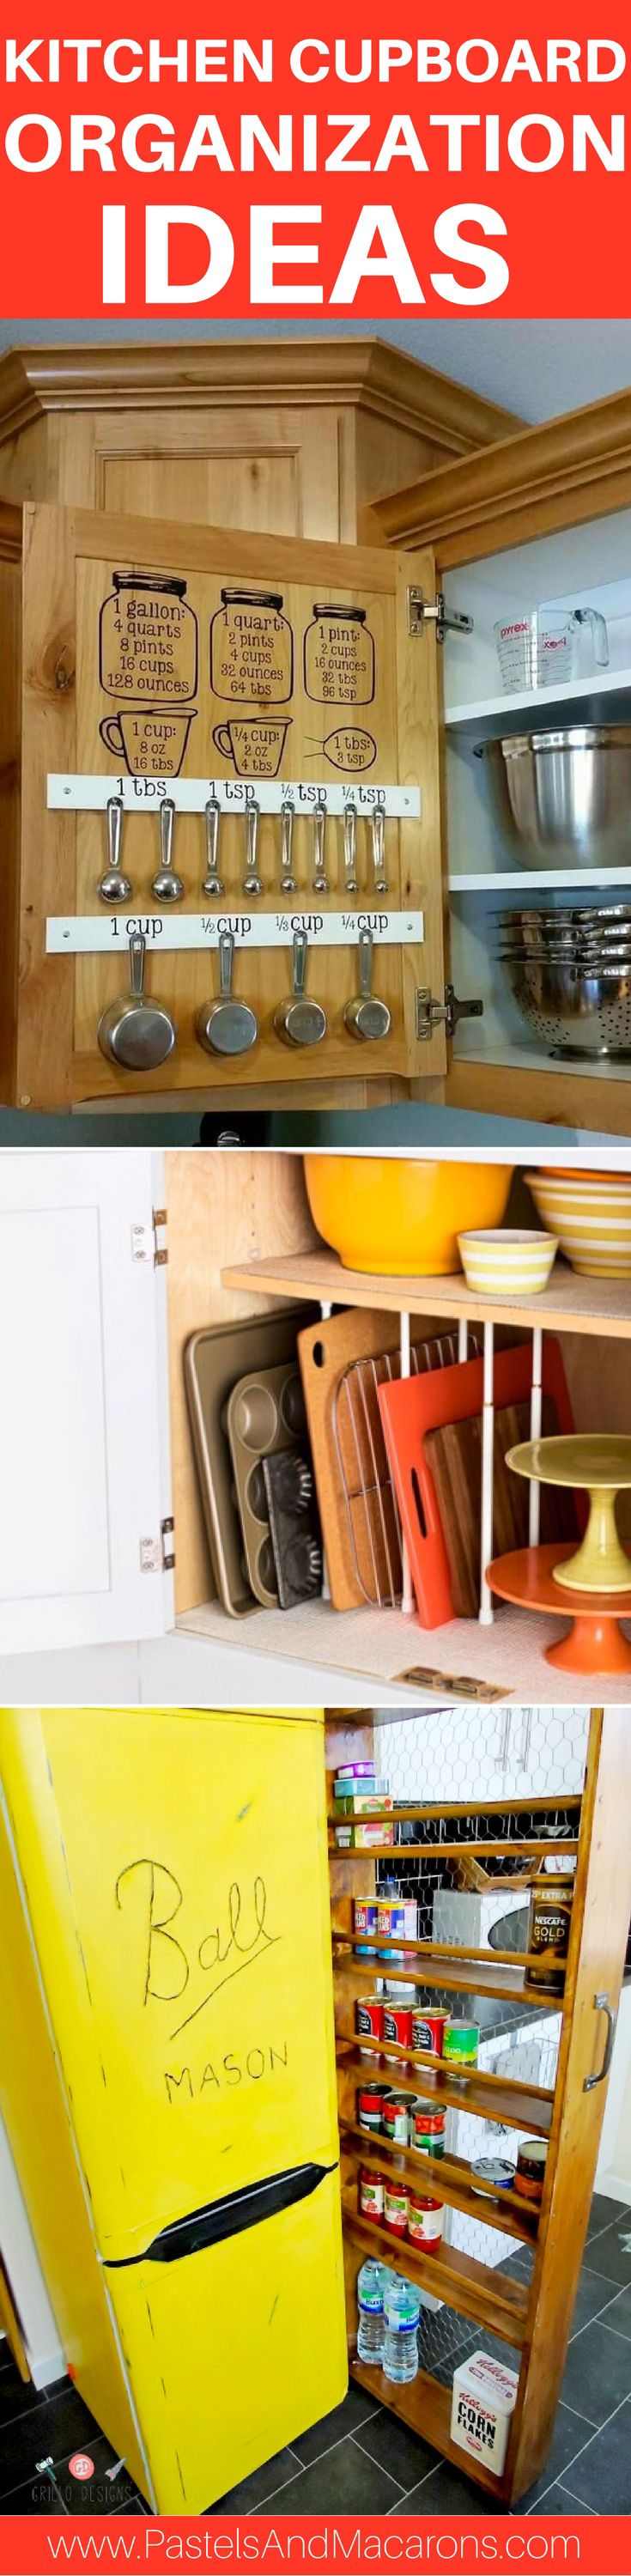 Small Kitchen Organization 17 Best Ideas About Small Kitchen Organization On Pinterest